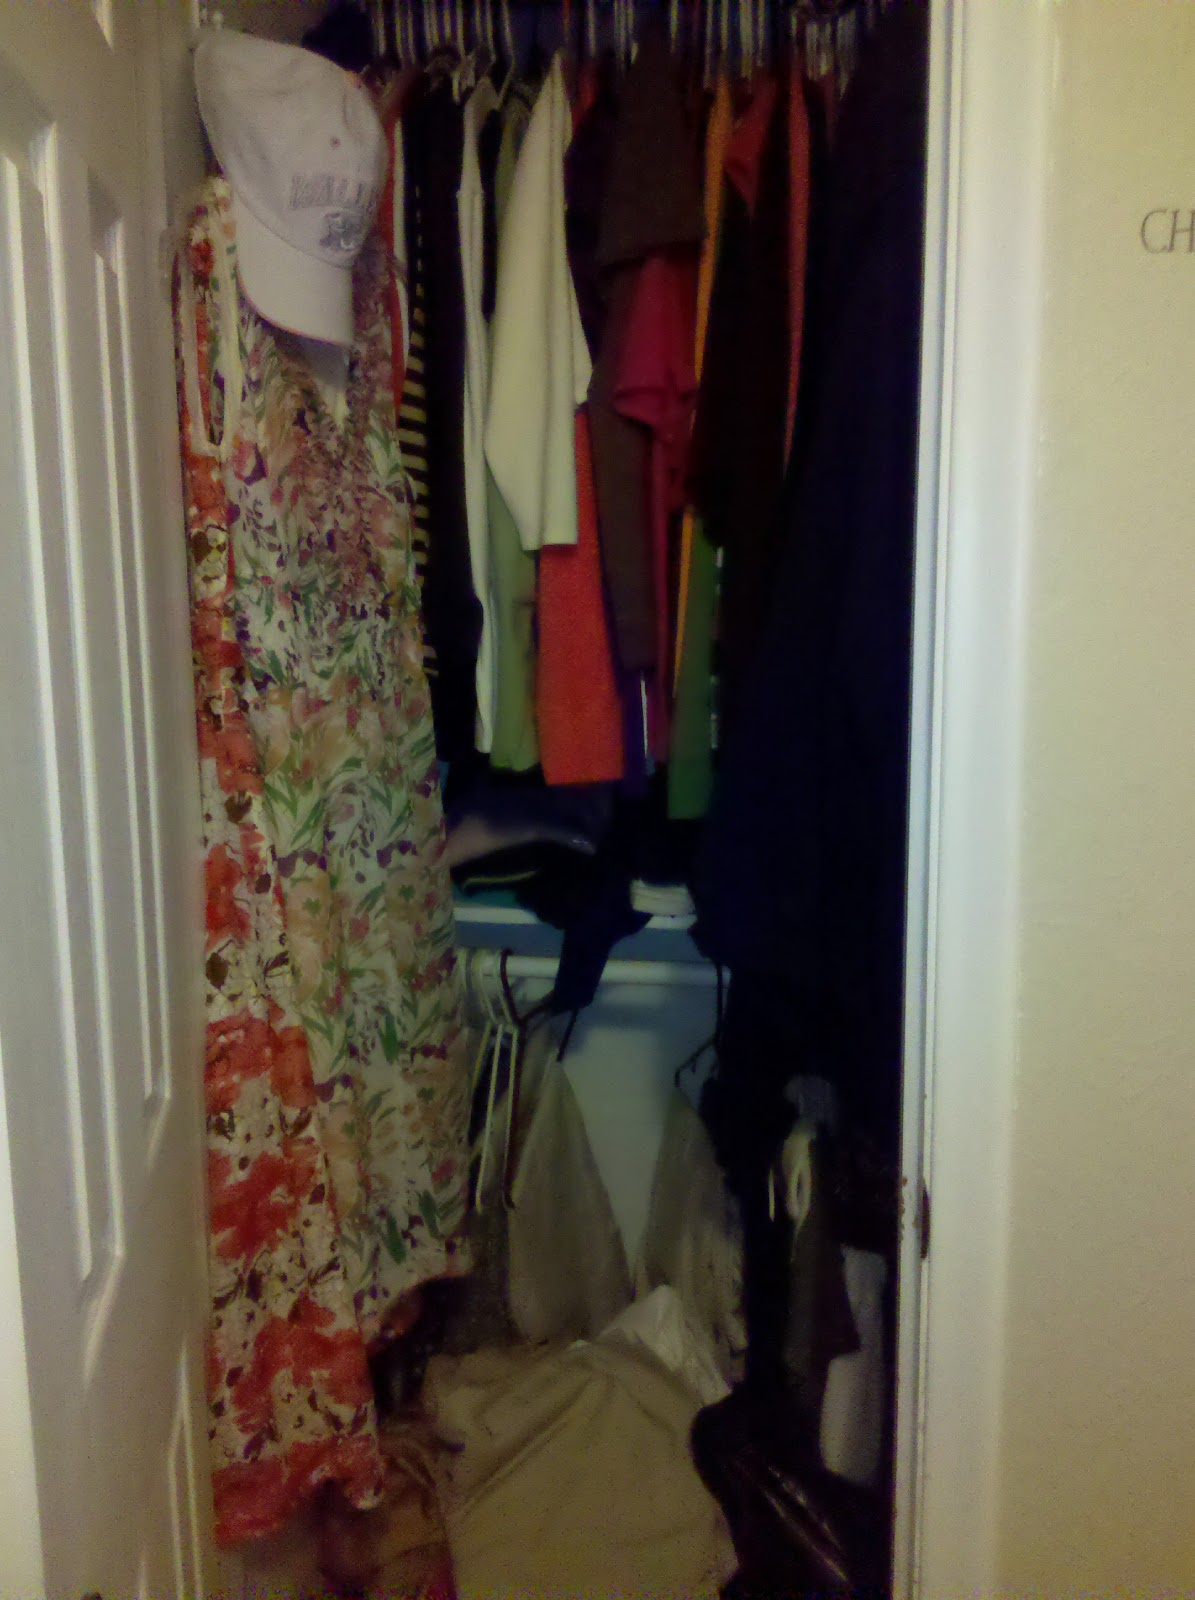 Speaking Of My Over Crowded Closetu2026 Iu0027ve Been Meaning To Clean It Out And  Get Rid Of Clothes I Donu0027t Want Anymore. Or Donu0027t Fit. *pretend I Didnu0027t  Say That ...